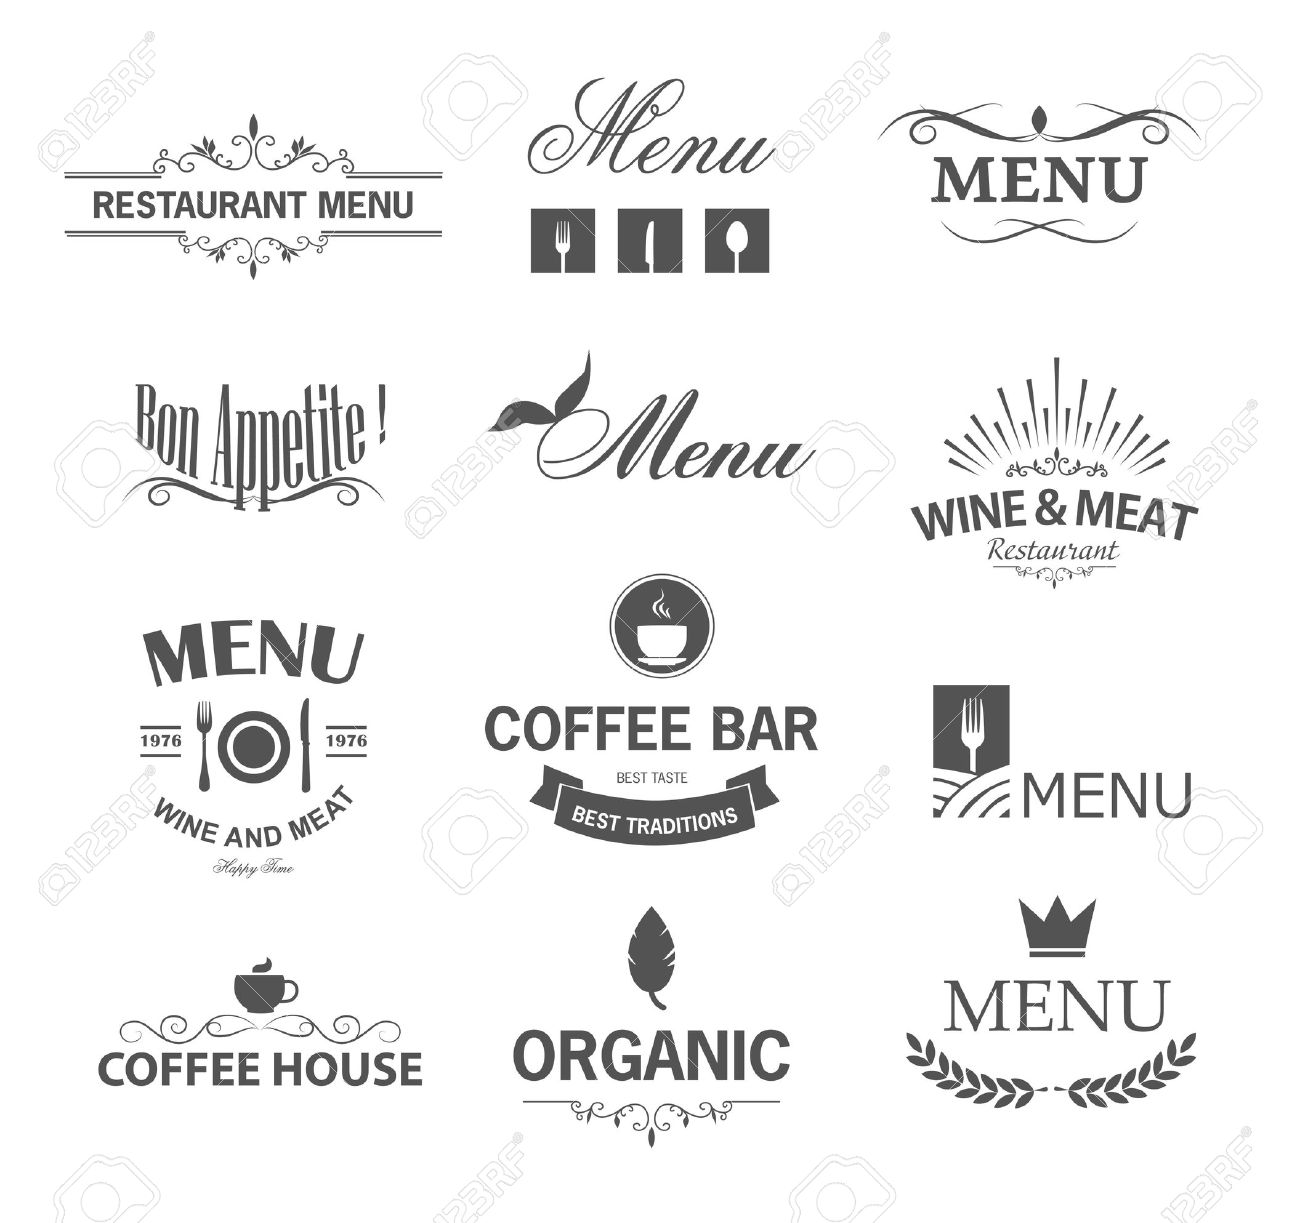 Vintage set of restaurant signs symbols logo elements and icons vintage set of restaurant signs symbols logo elements and icons calligraphy decorations collection buycottarizona Image collections